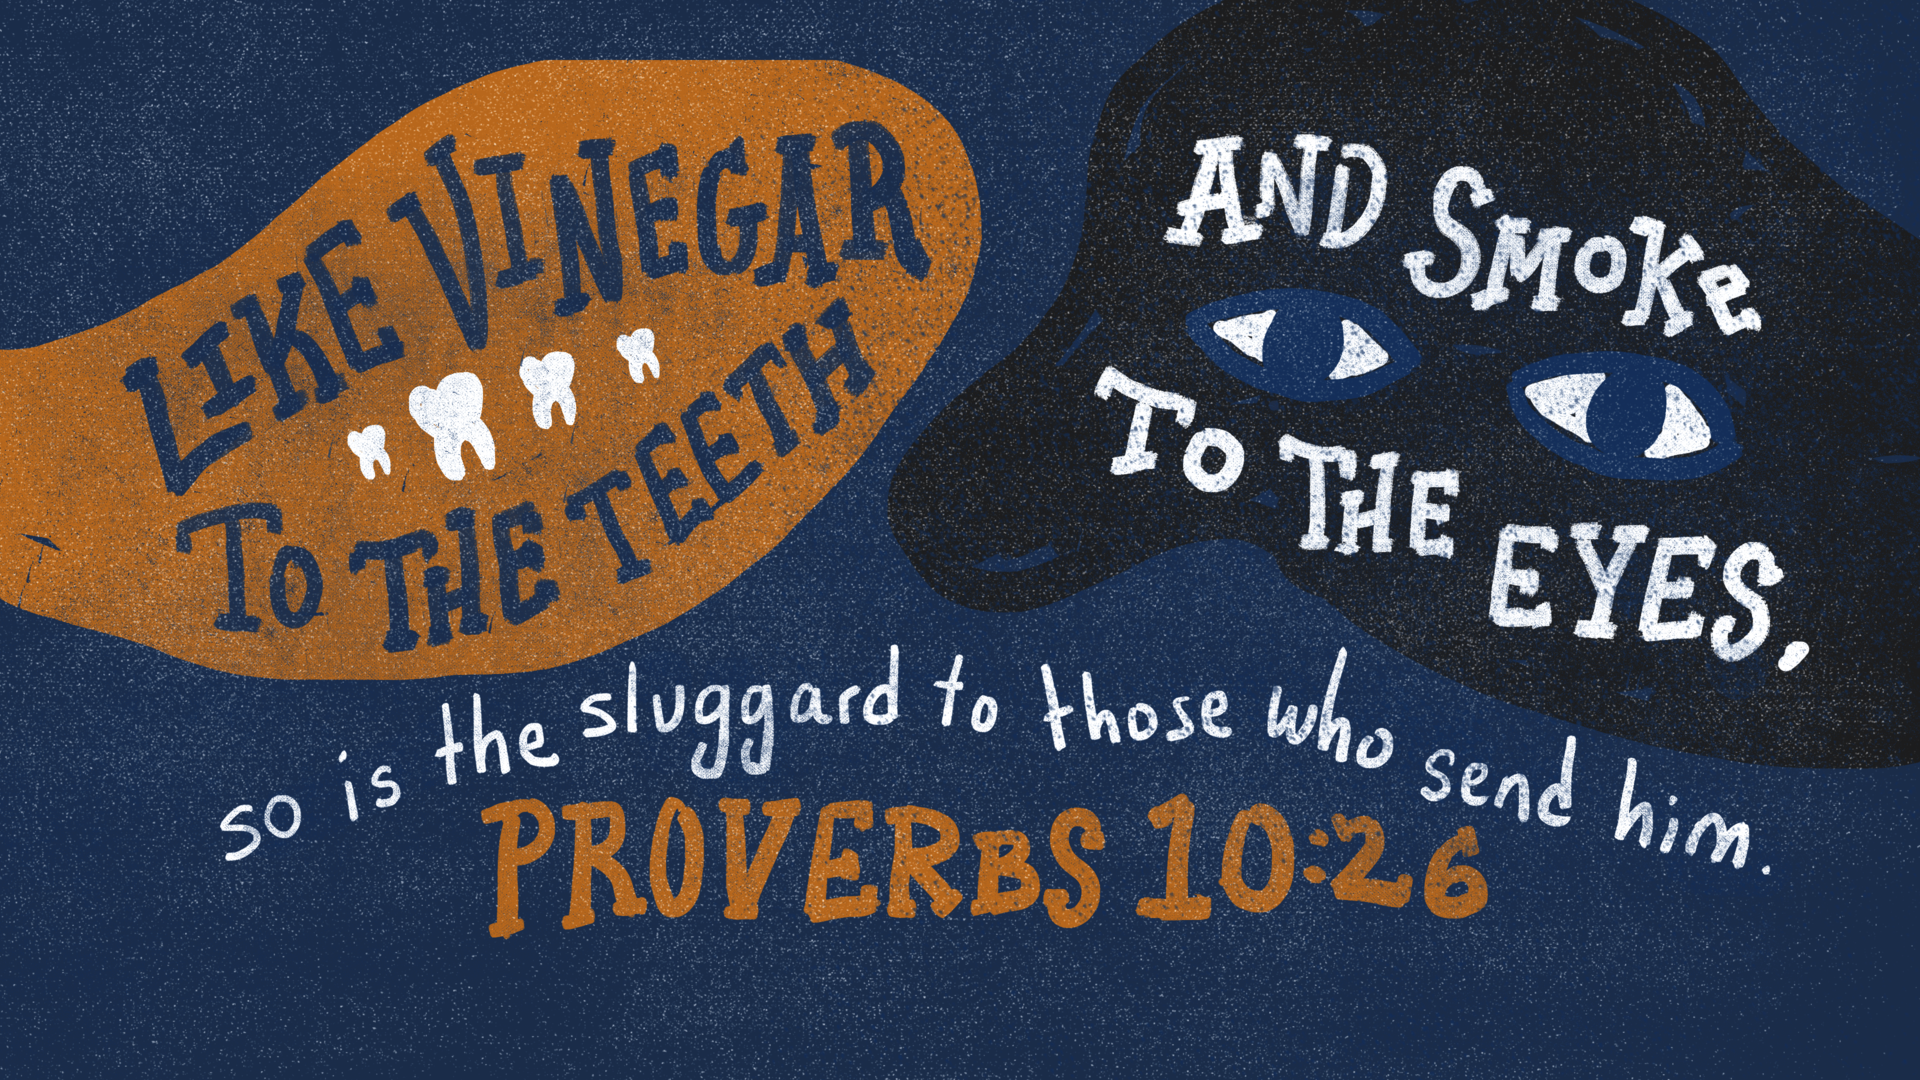 Proverbs_10_26-3840x2160.png